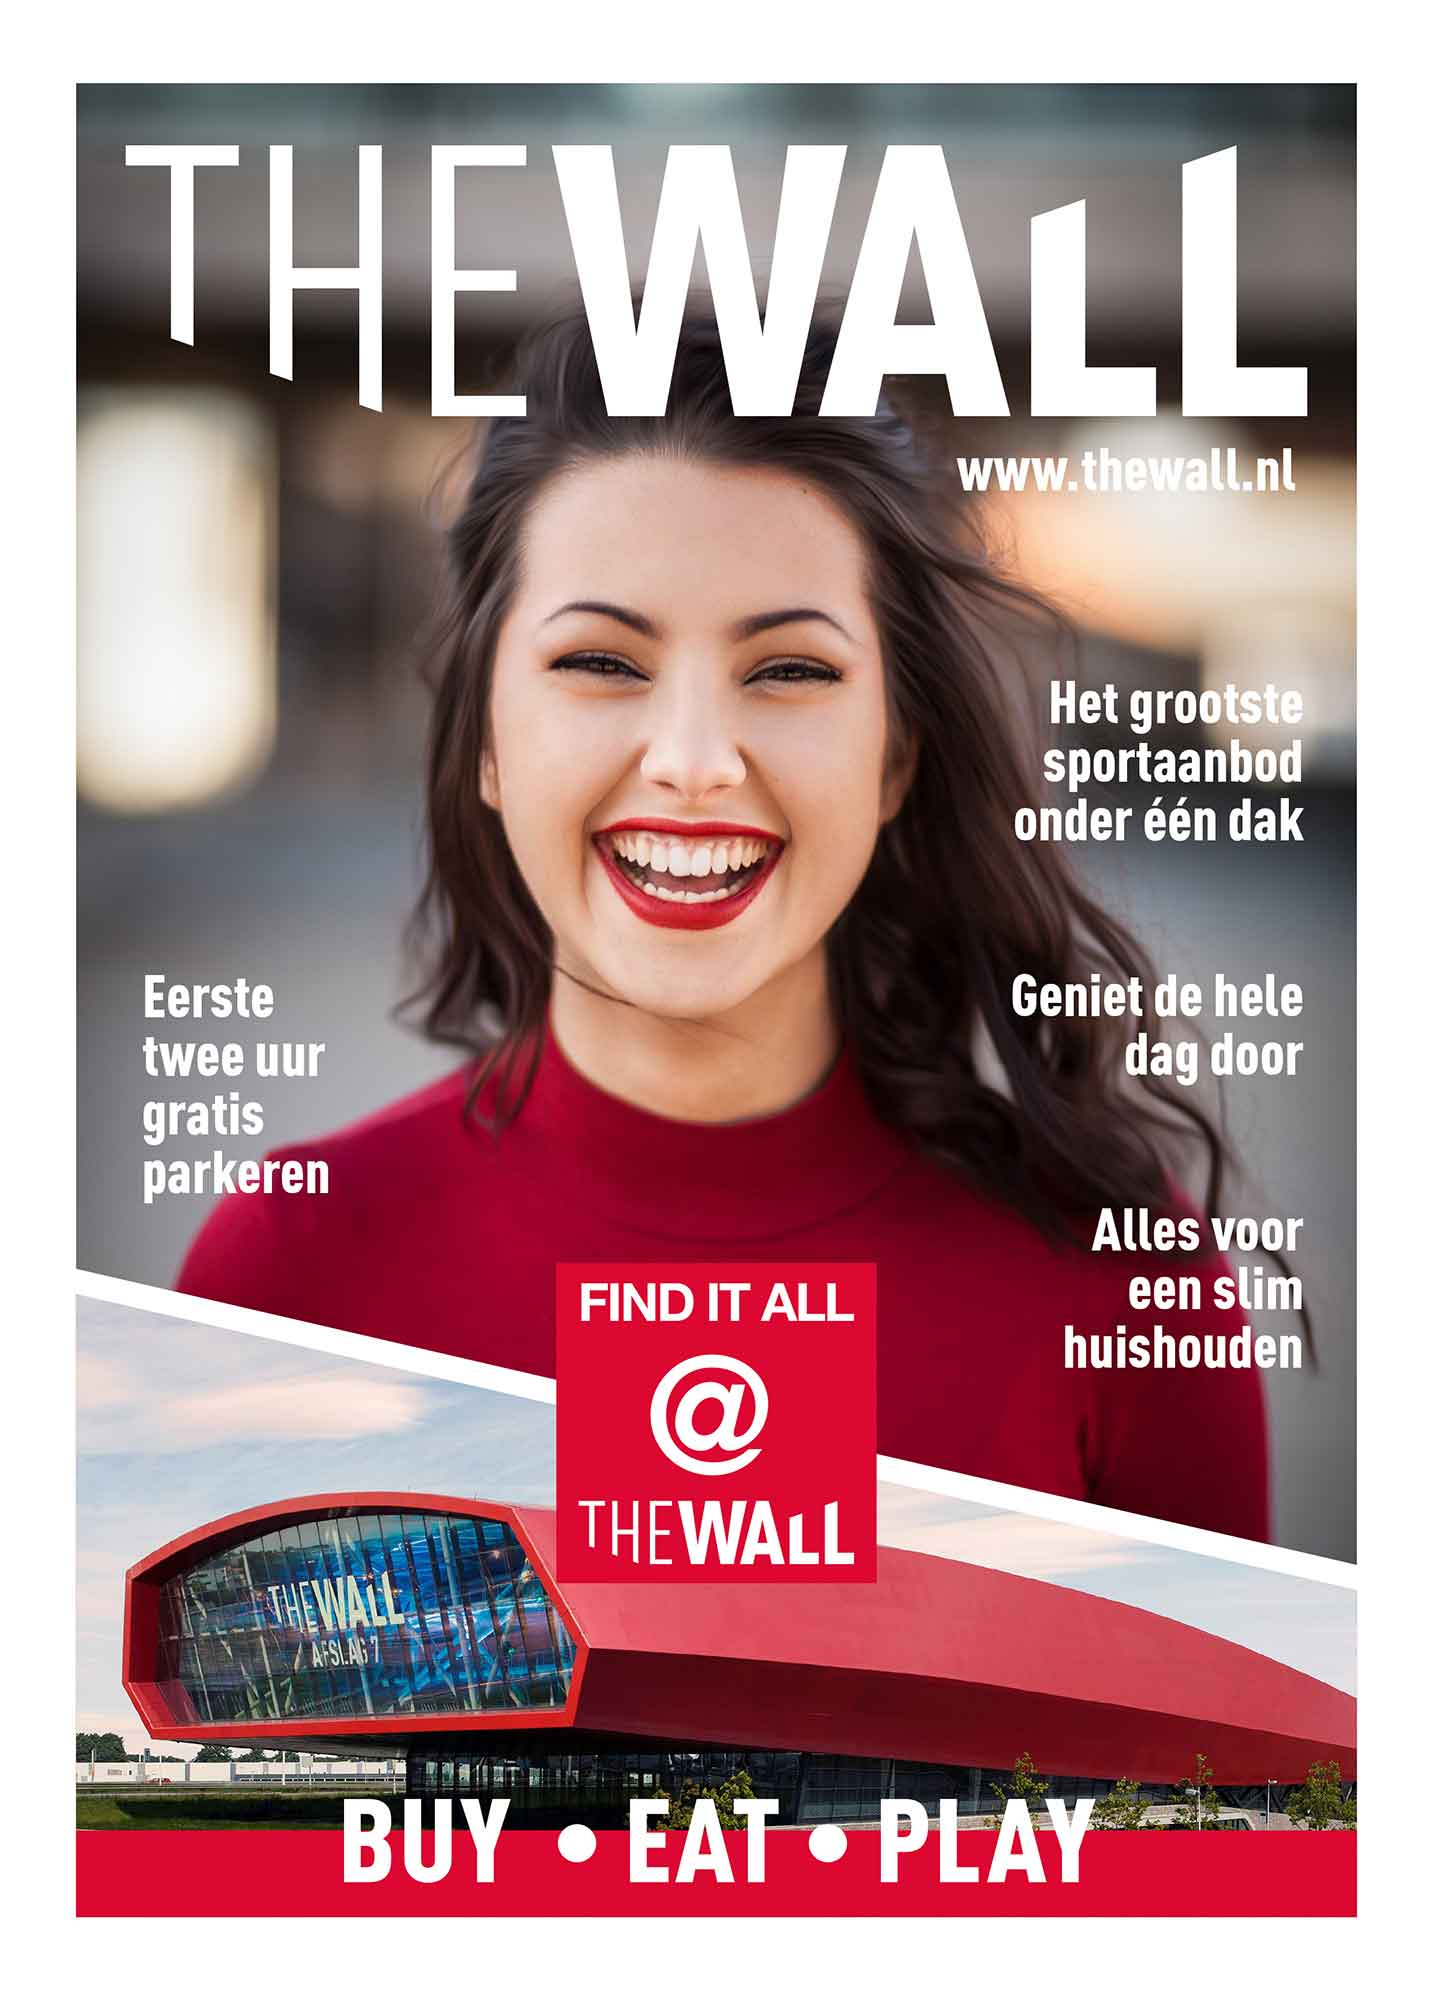 Magazine The Wall Utrecht ~ buy I eat I play © Urban Solutions (placemaking - placebranding)